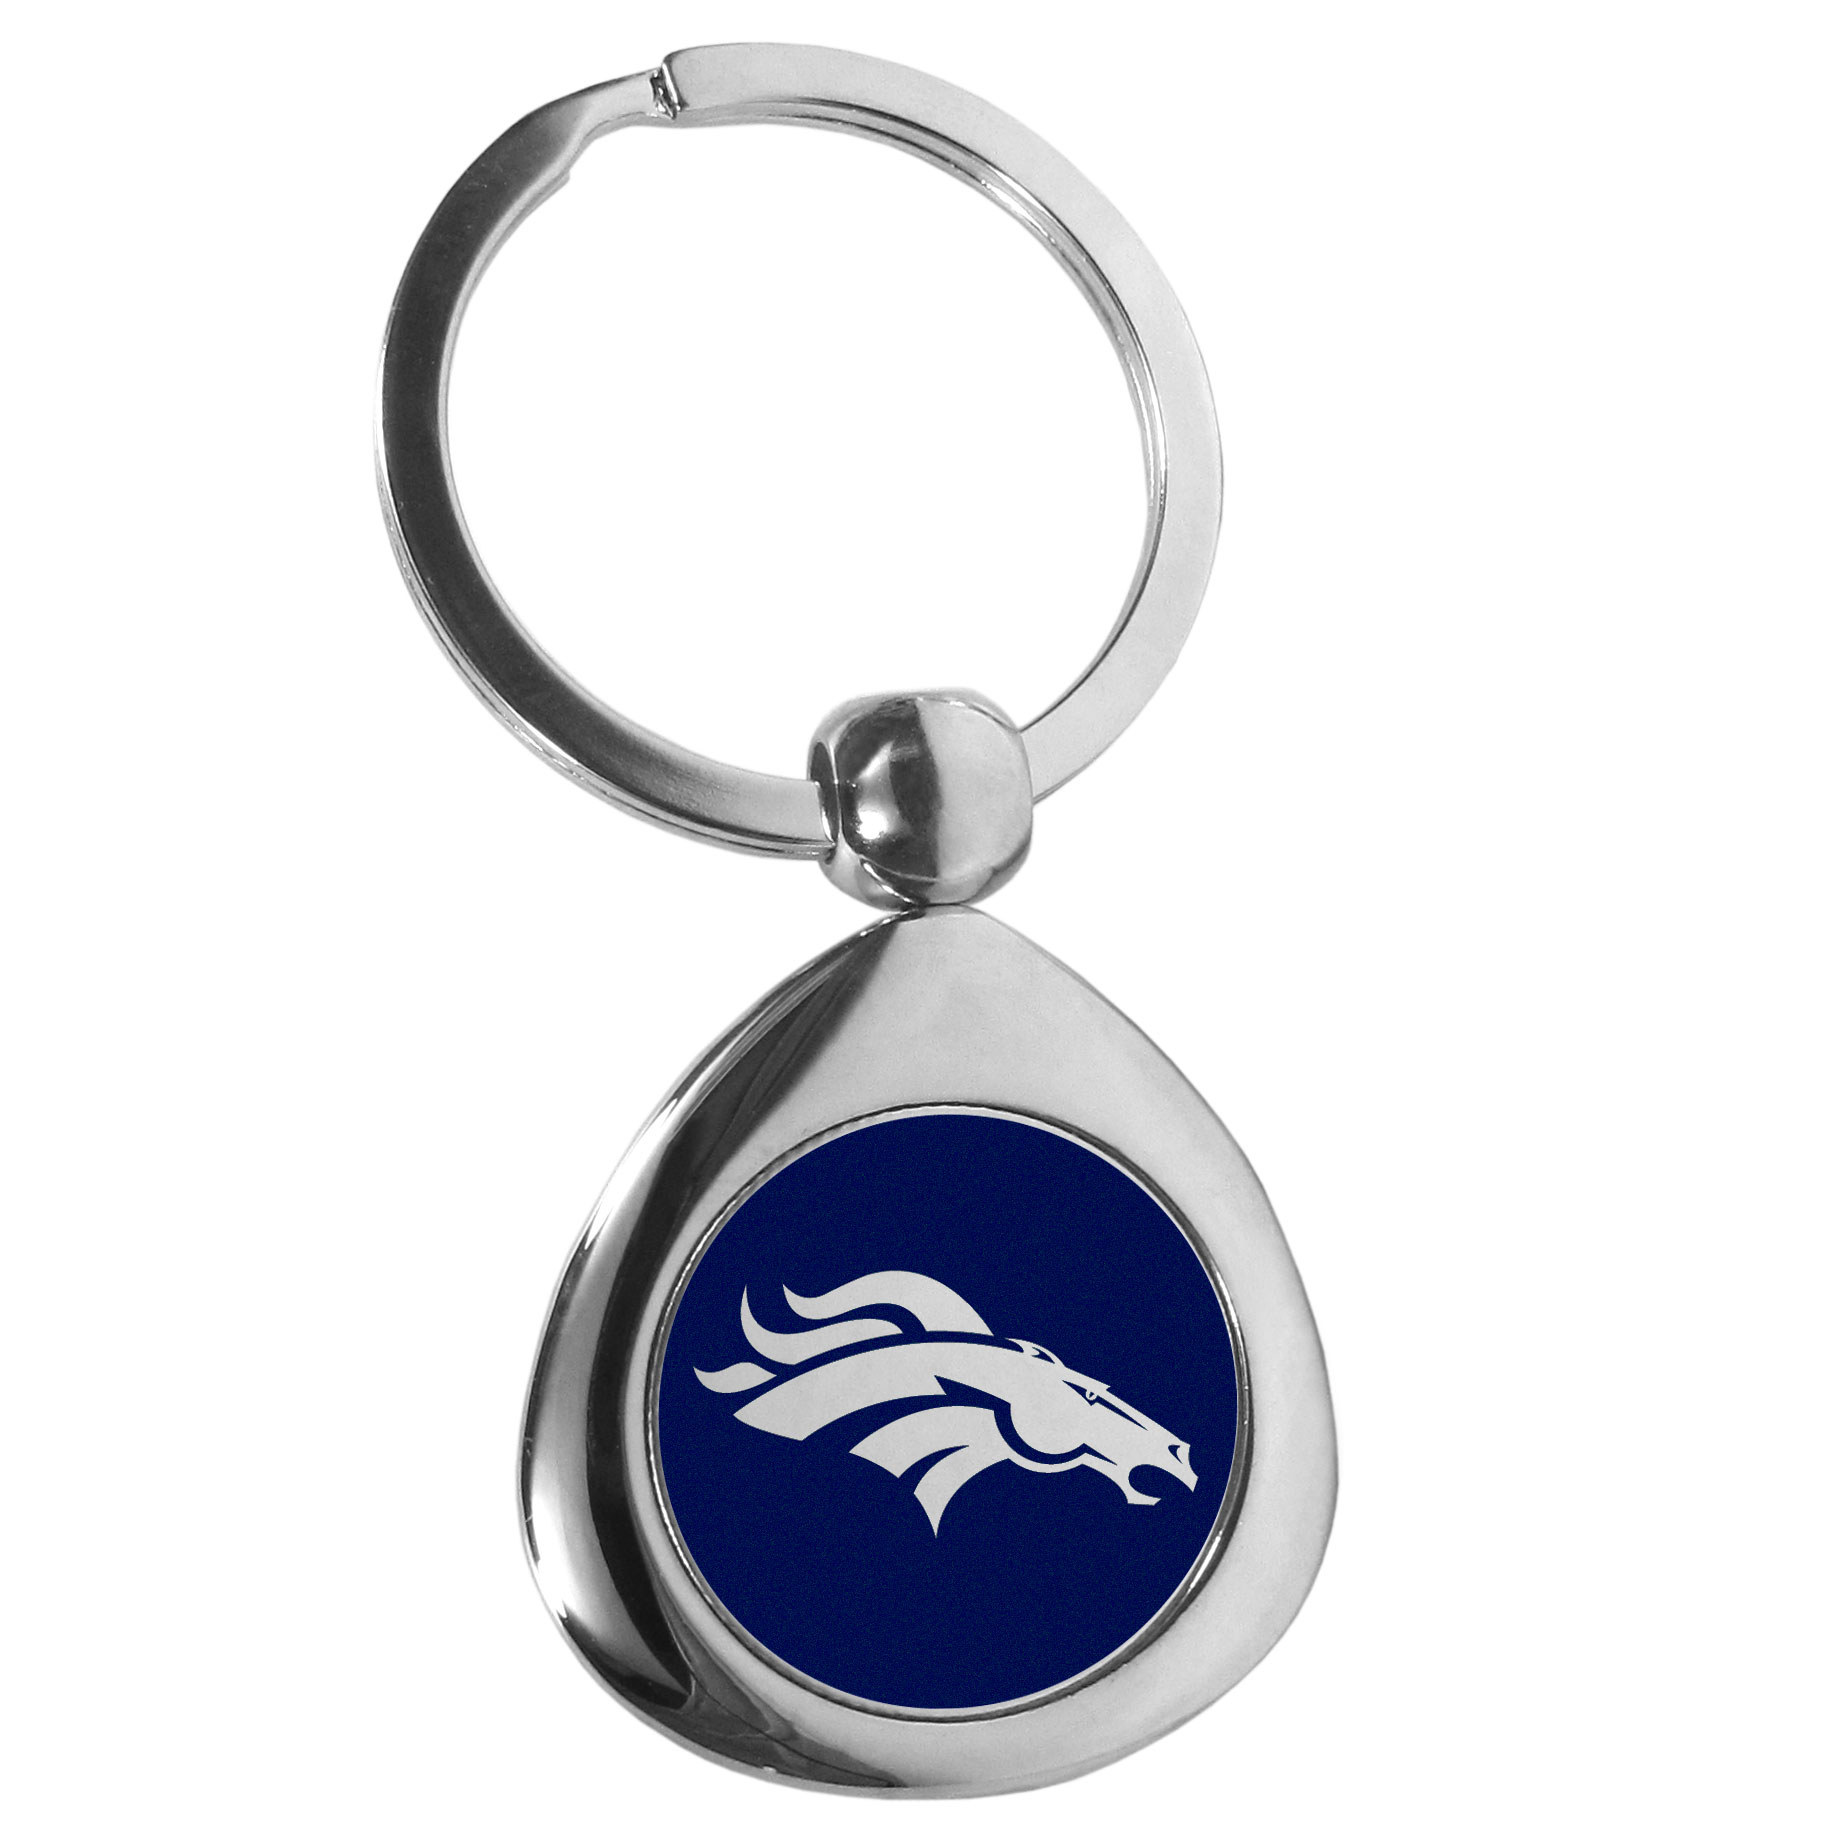 Denver Broncos Round Teardrop Key Chain - Our high polish chrome Denver Broncos round teardrop key chain has a classy look with a sporty twist. The high-quality key fob features the team logo in the team's primary color. The key ring is a flat split ring that is easier to load you home and auto keys onto.